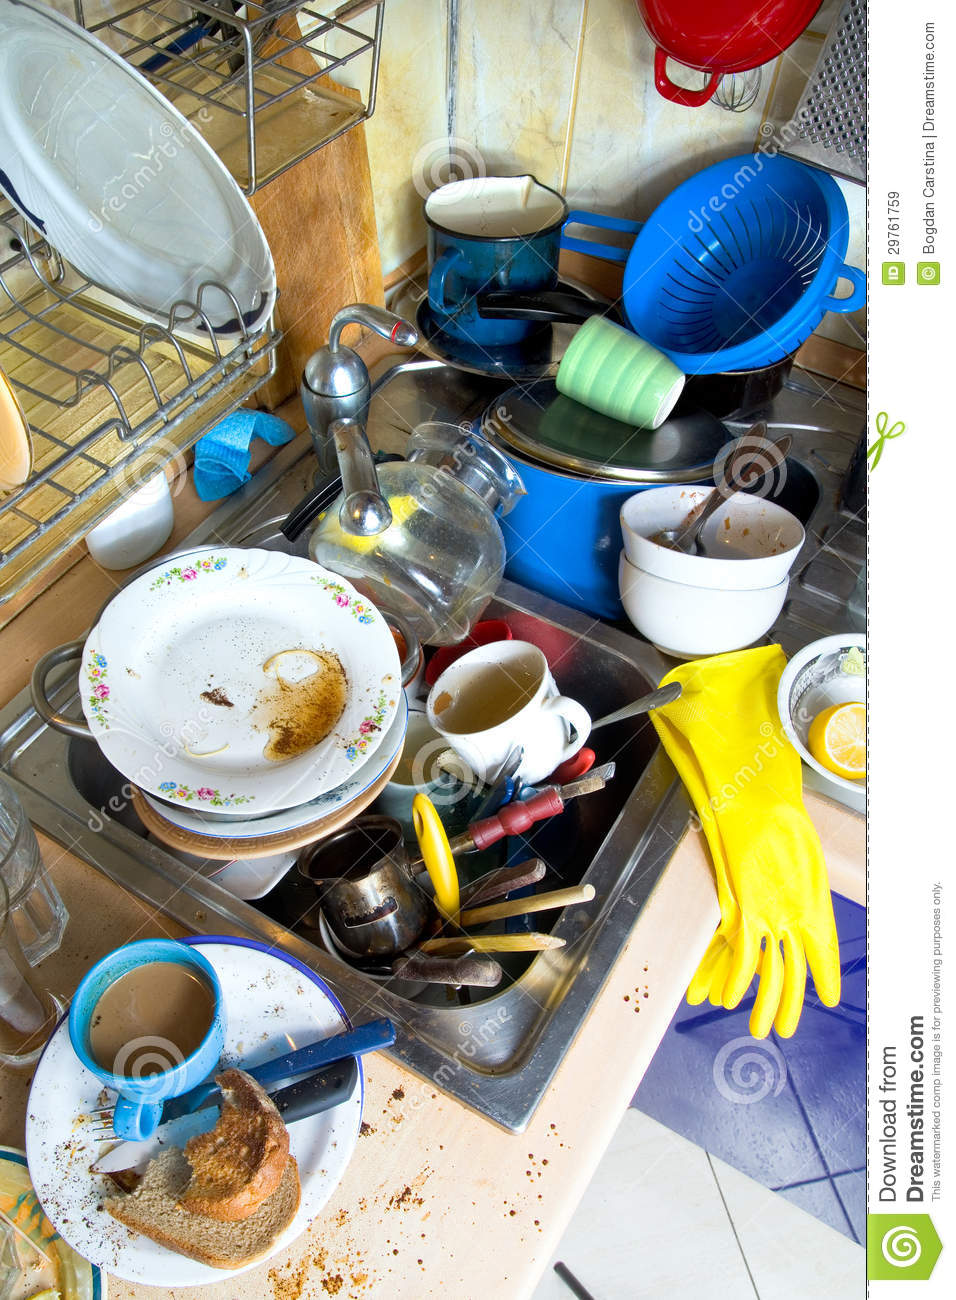 Dirty Kitchen Unwashed Dishes Stock Image Image Of